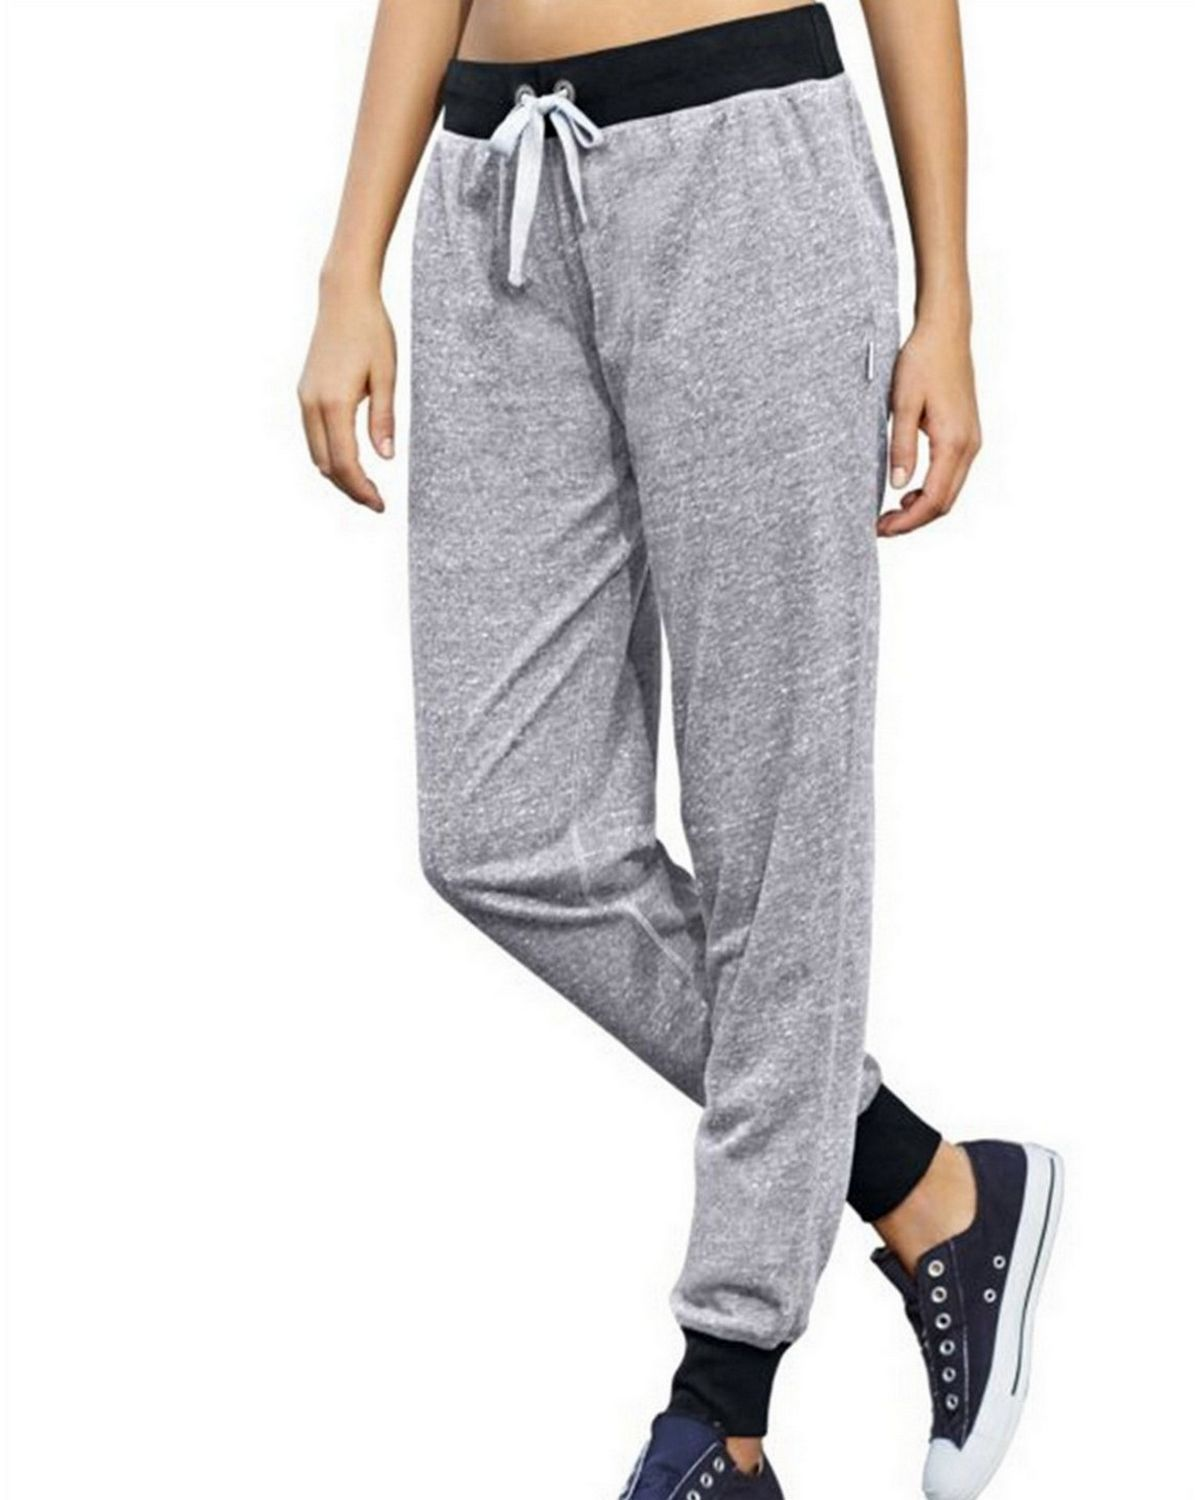 Champion M0586 Womens Jogger Pants - Oxford Grey/Black - XL M0586